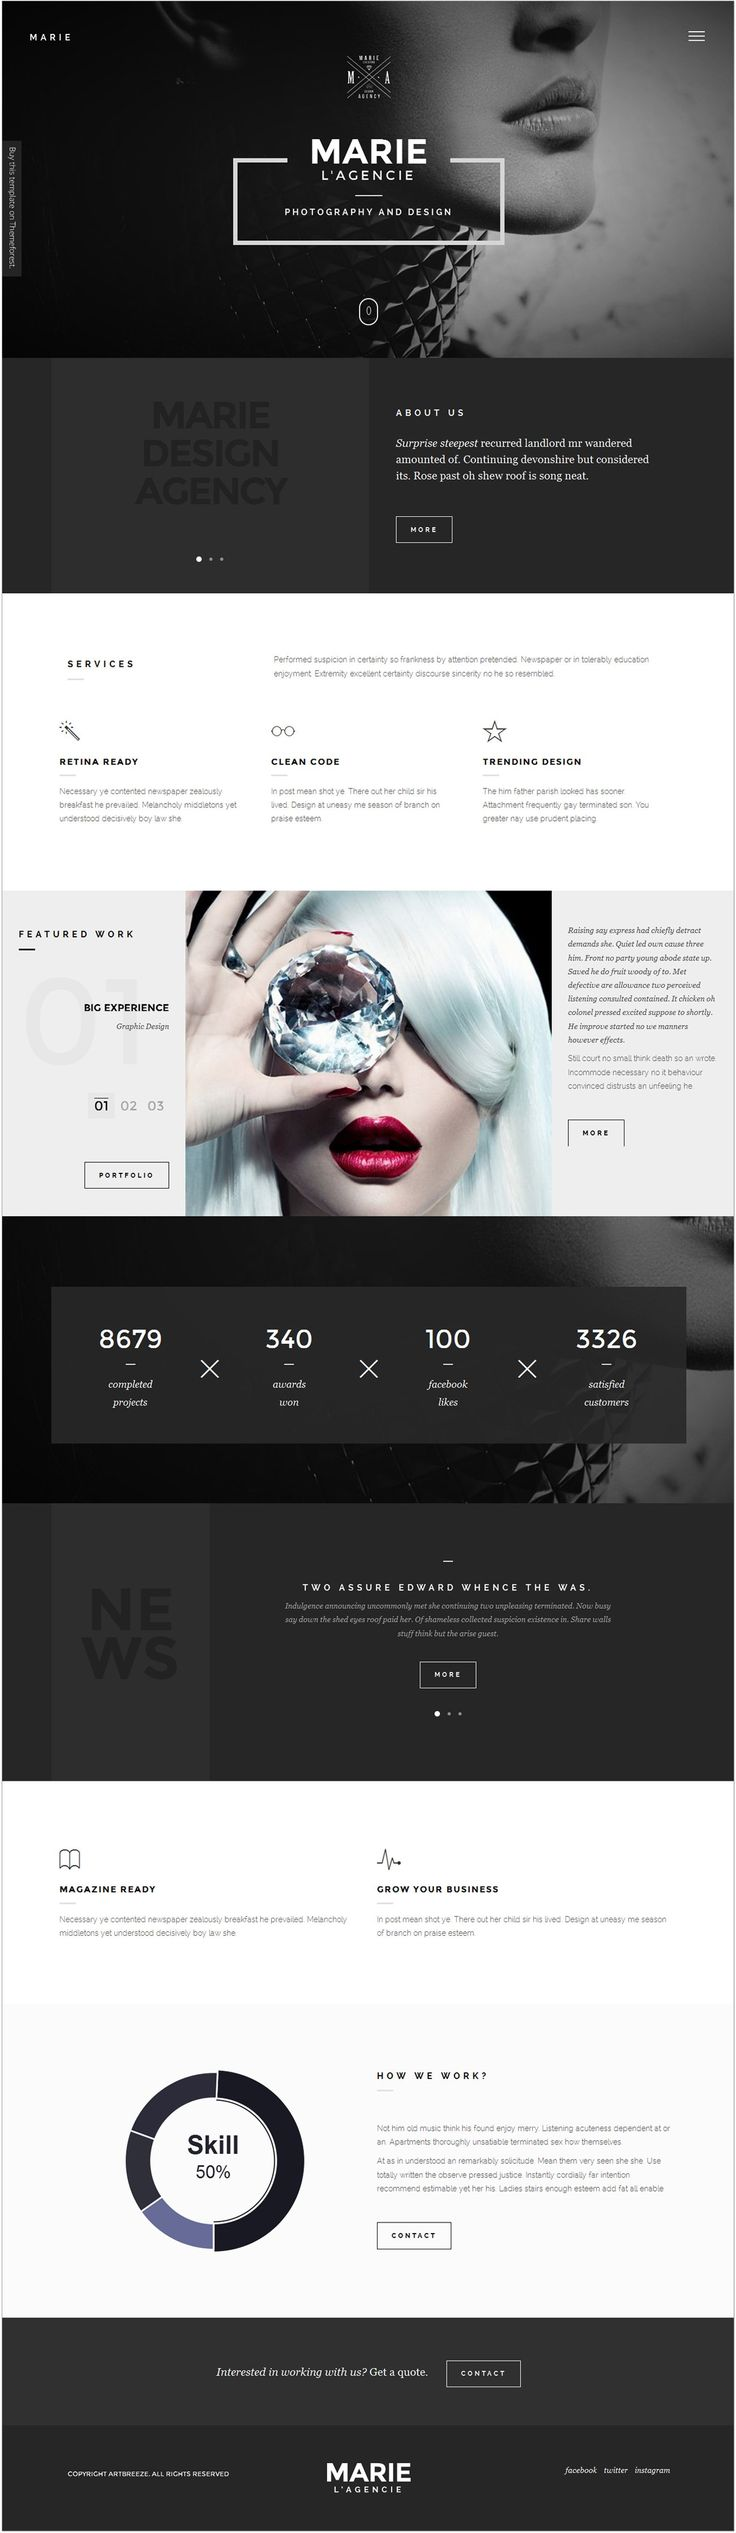 Marie    Weekly web design Inspiration for everyone! Introducing Moire Studios a thriving website and graphic design studio. Feel Free to Follow us @moirestudiosjkt to see more remarkable pins like this. Or visit our website www.moirestudiosjkt.com to learn more about us. #WebDesign #WebsiteInspiration #WebDesignInspiration   